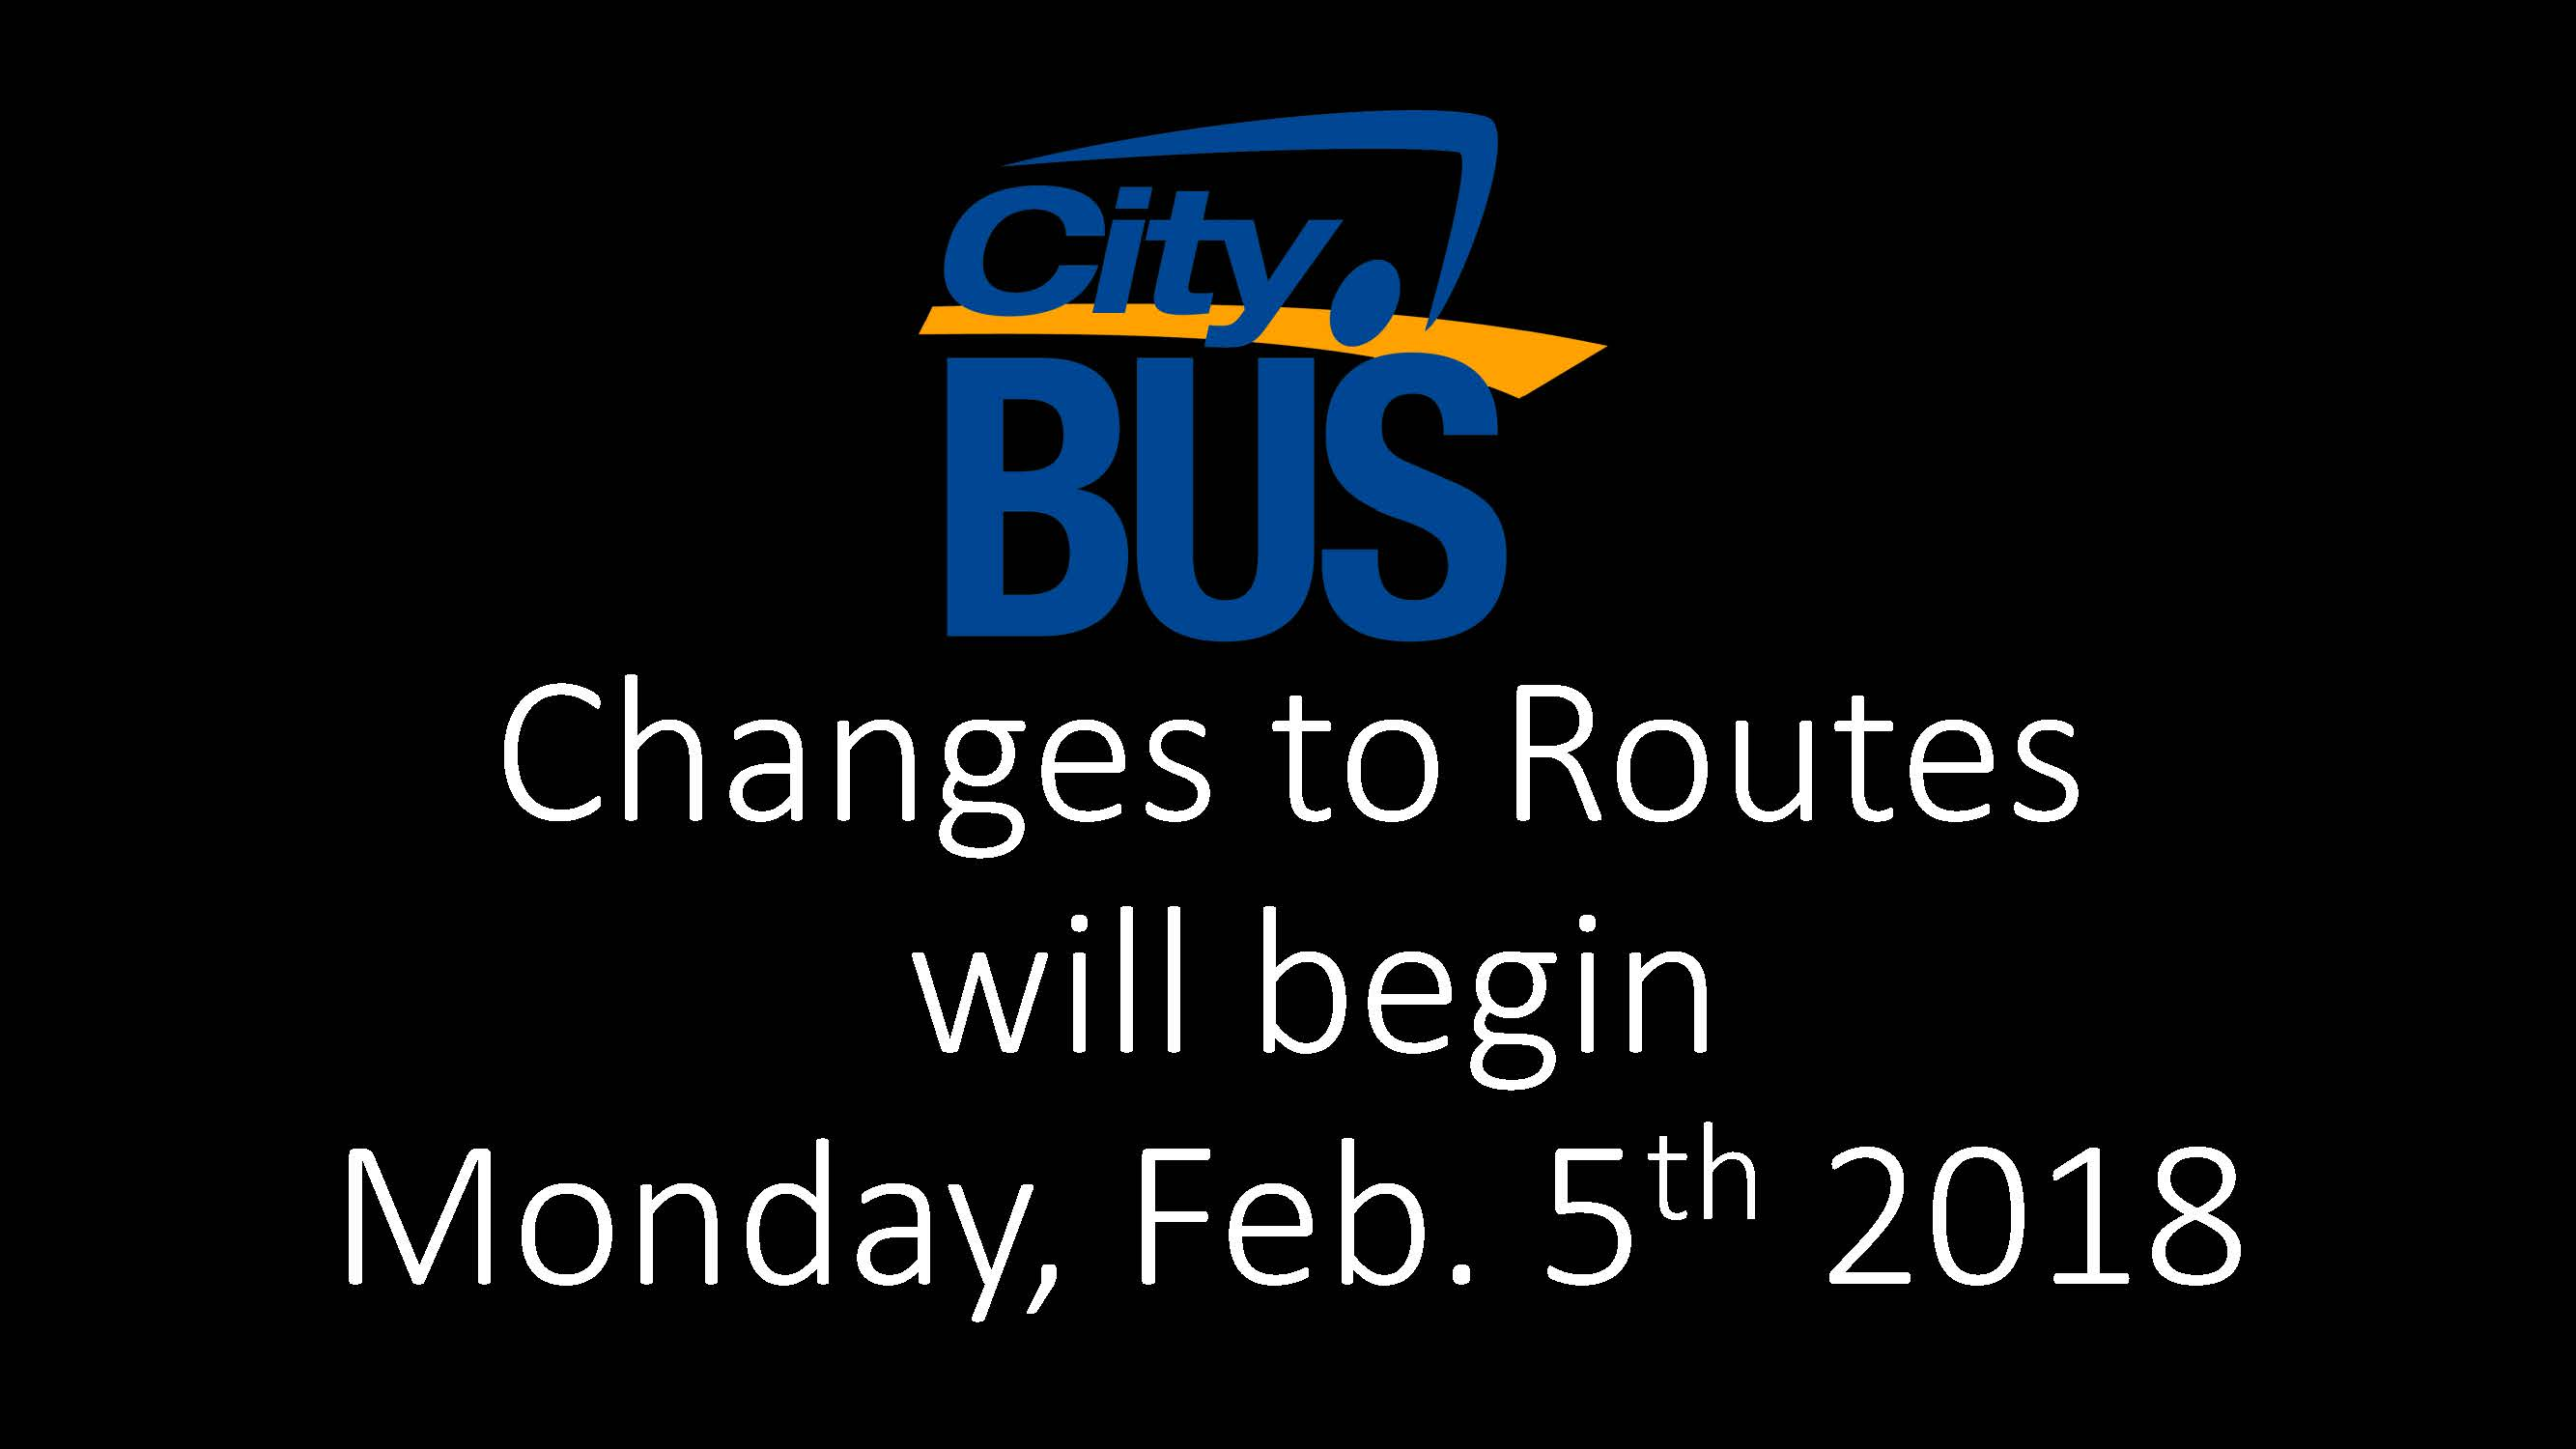 City Bus Feb 5